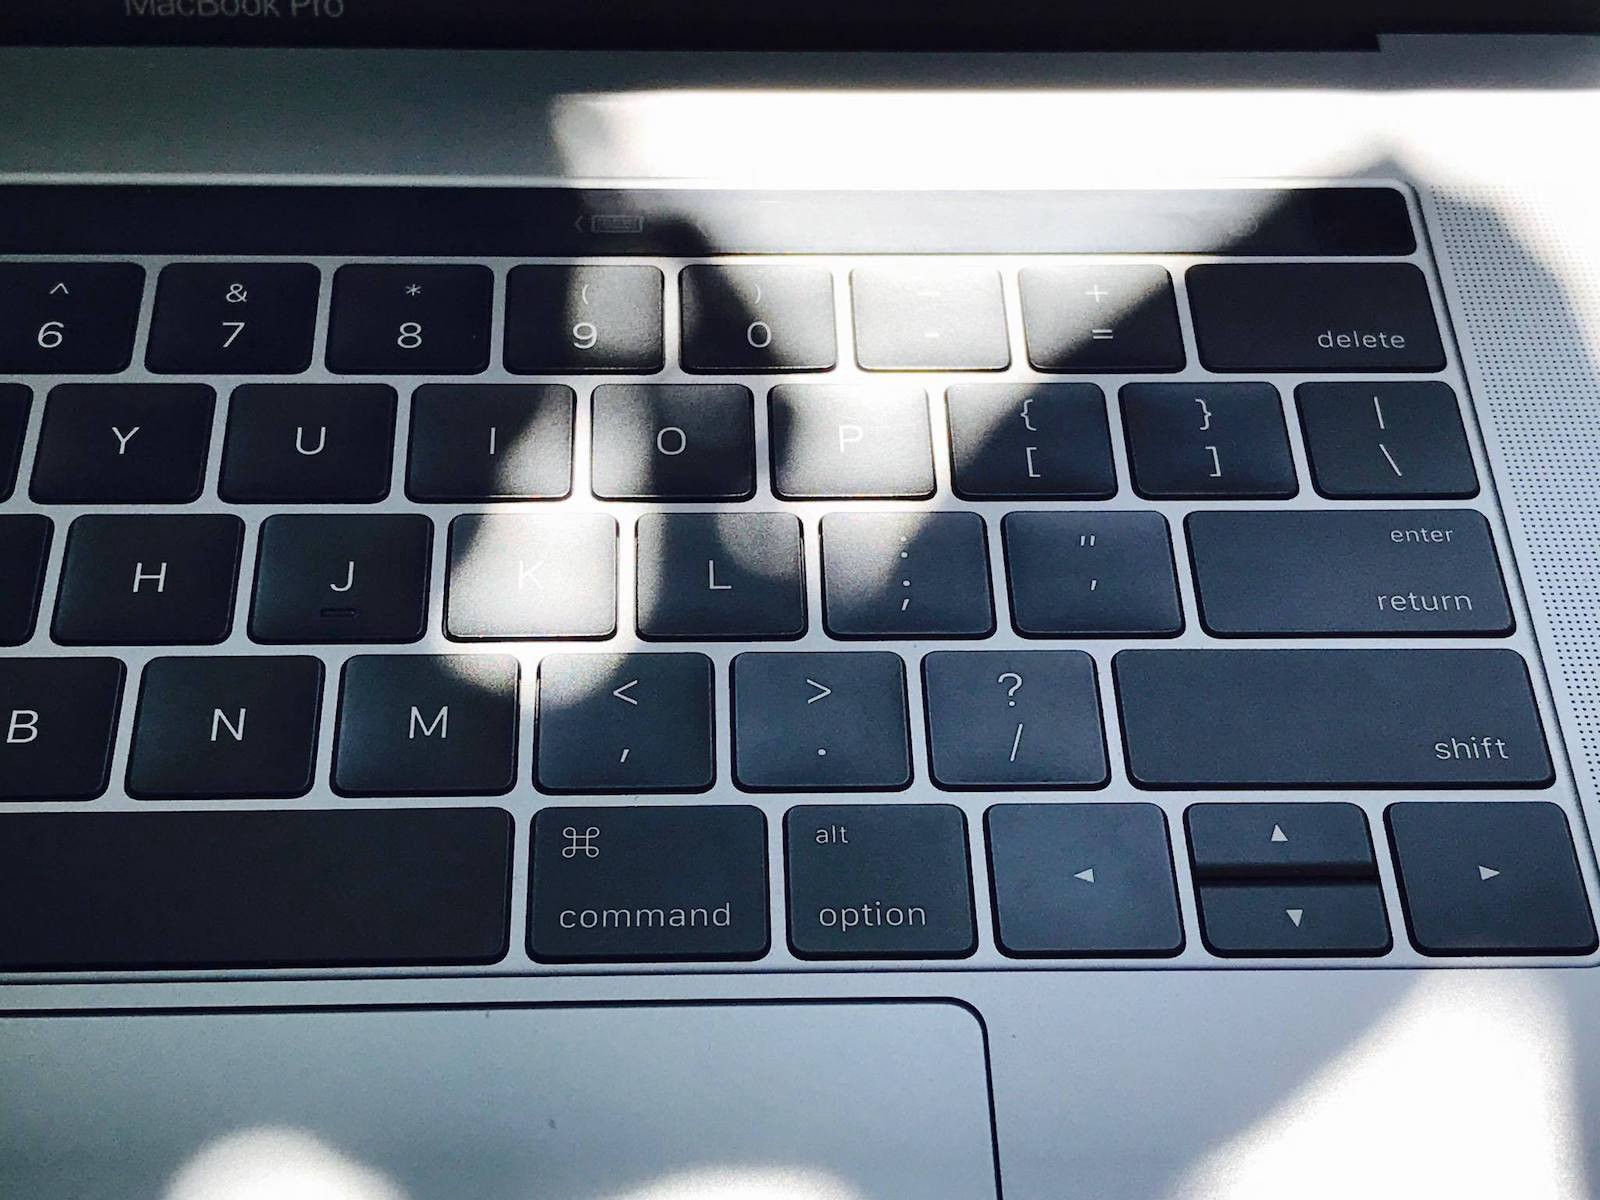 You can't see TouchBar on MacBook Pro while the sun is shining.